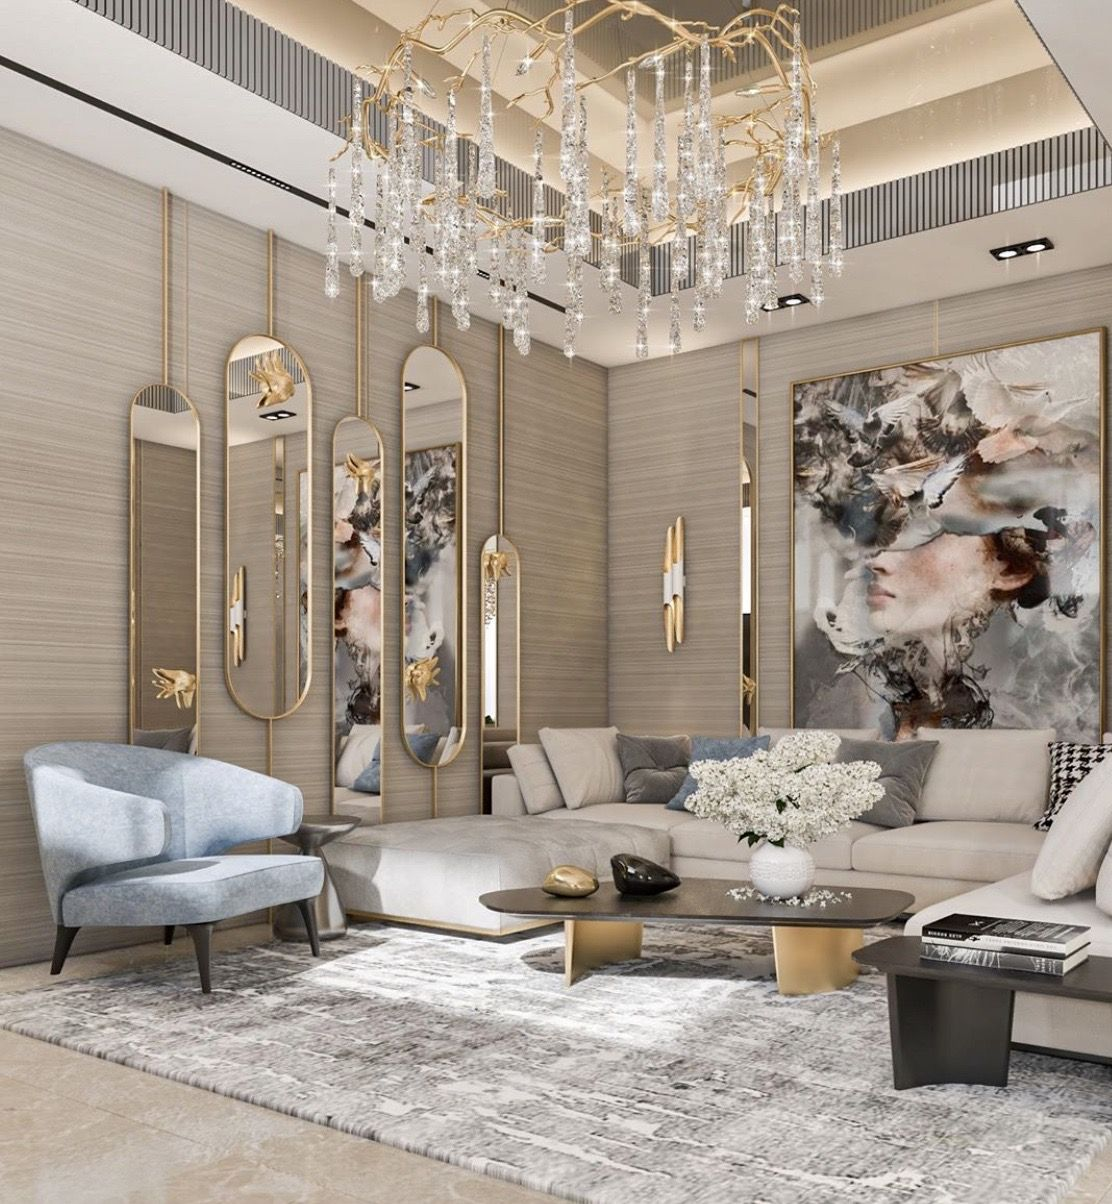 Luxury white beige and gold modern style glam living room decor with modern art and white sectional